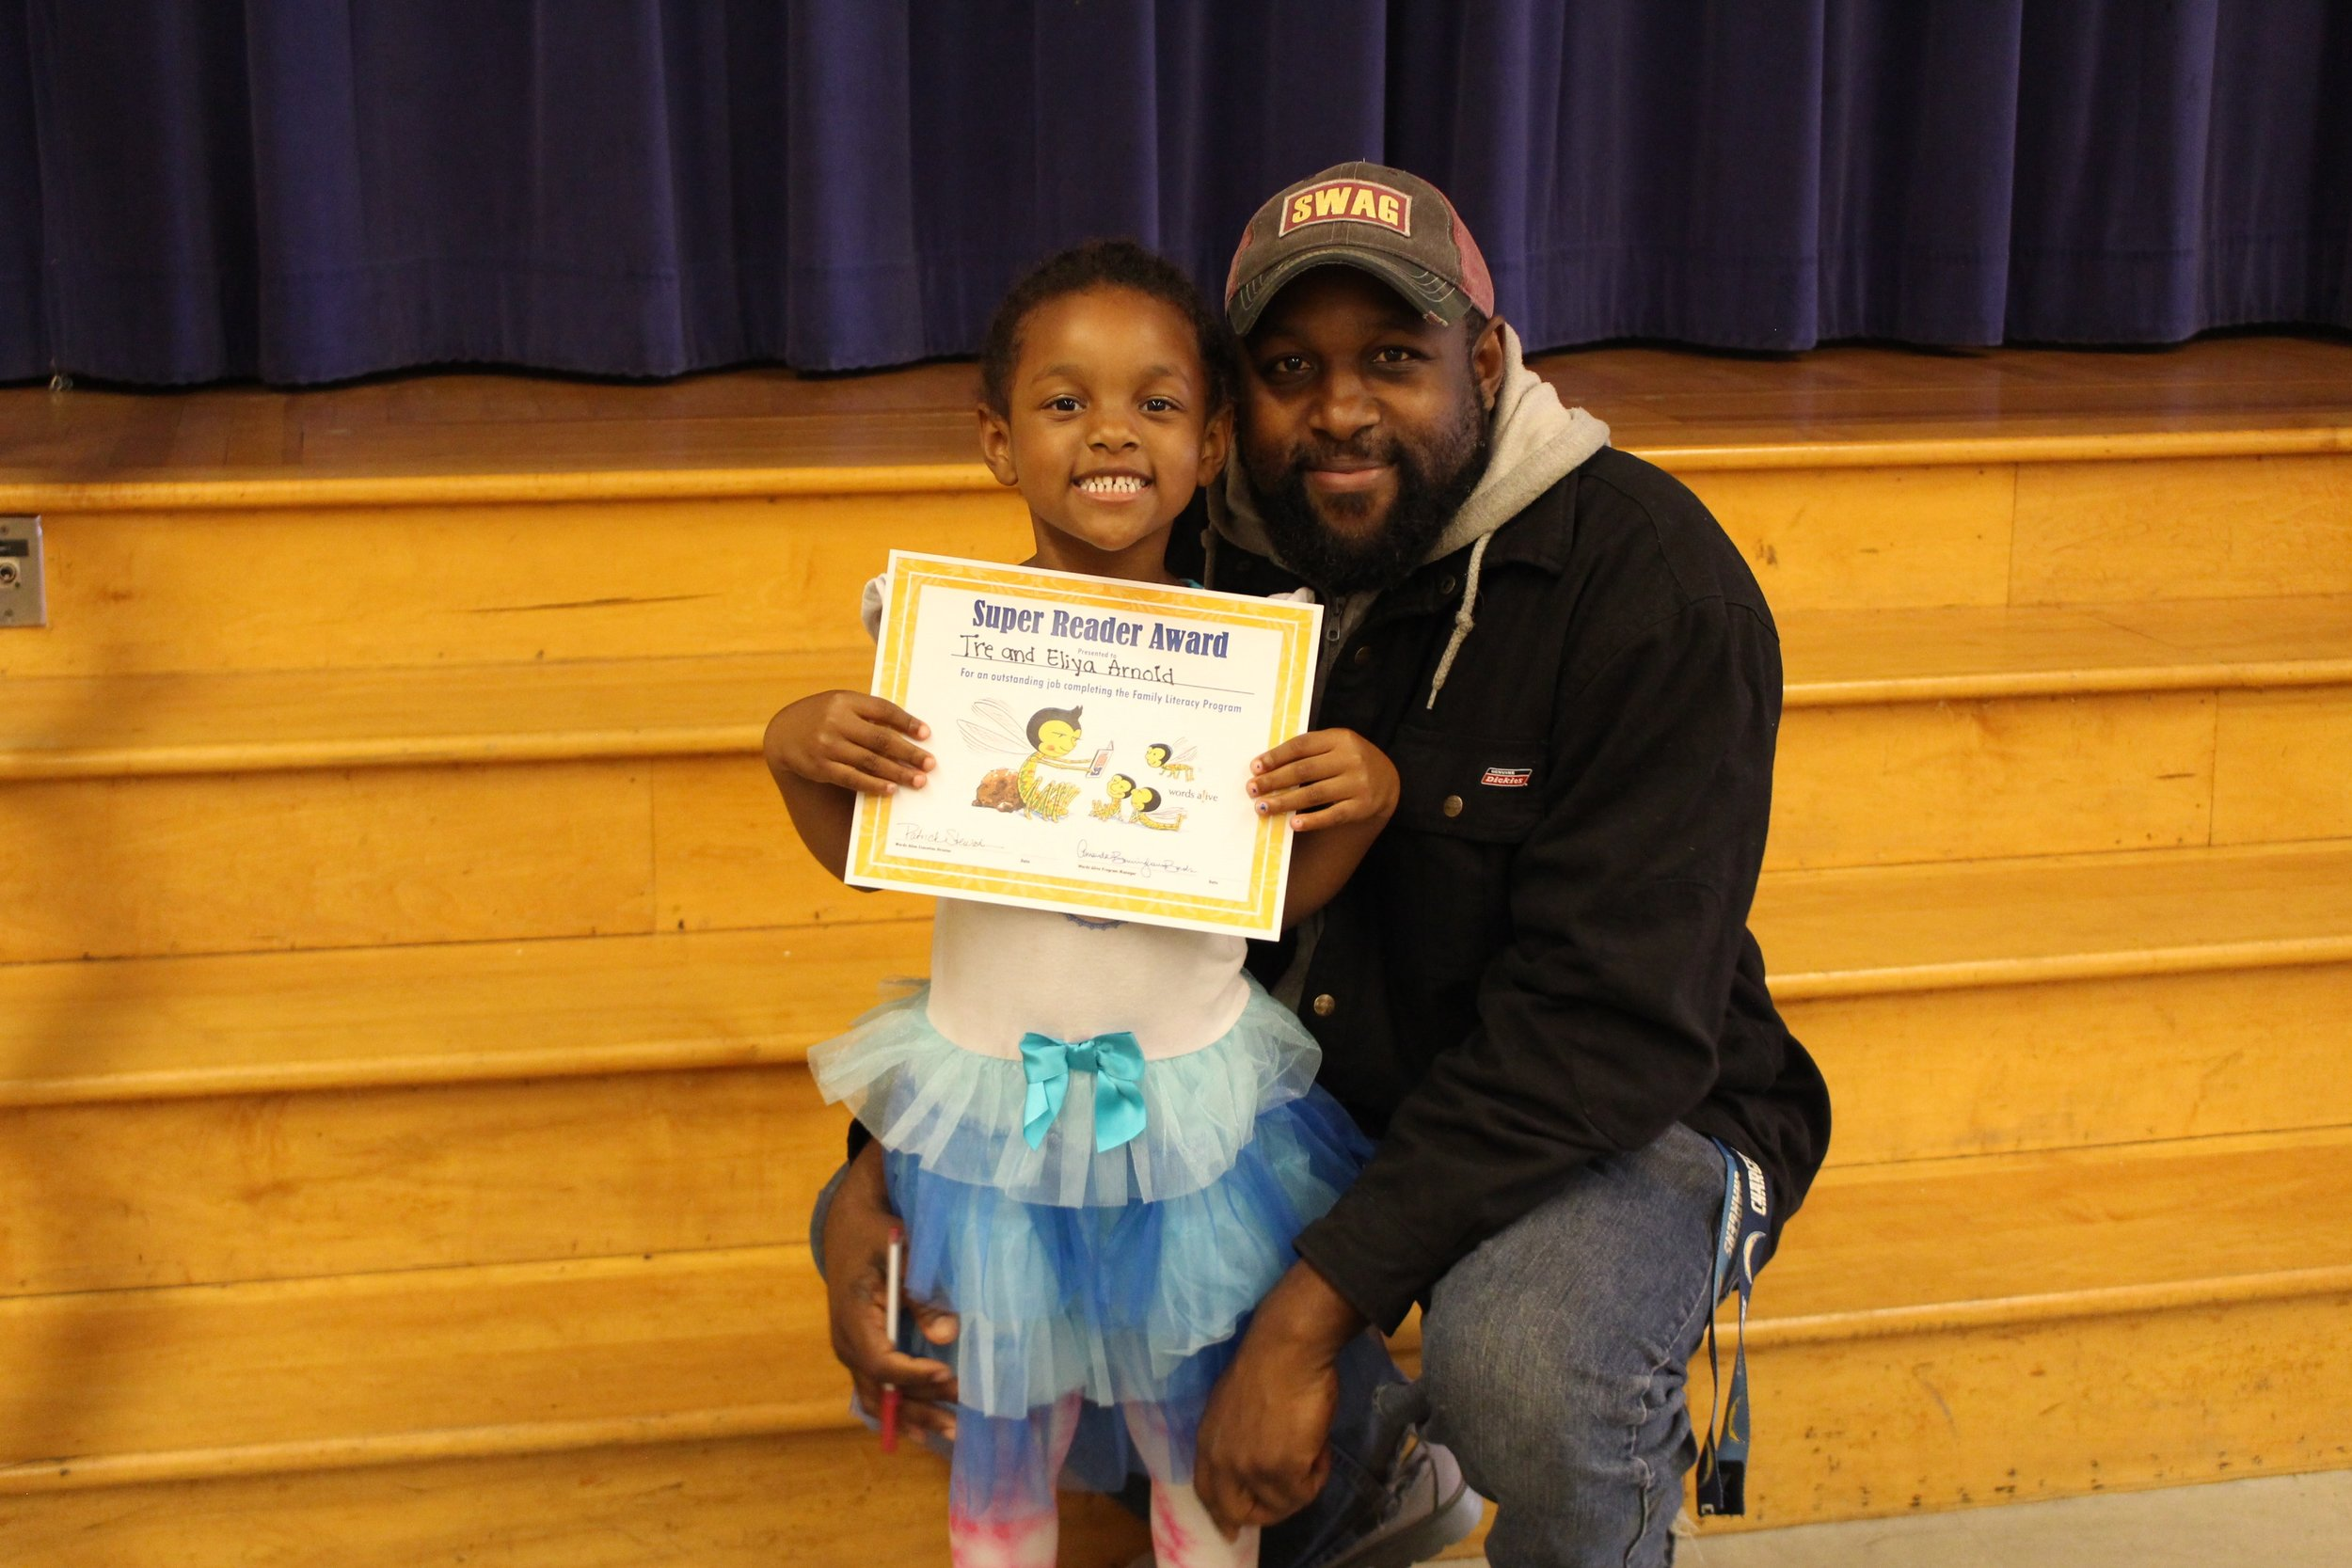 """Tre (single father of three, Army veteran,community college student) with his child at a Family Literacy Program graduation in 2016. His daughter is holding a piece of paper that says """"Super Reader Award."""" Tre had perfect attendance during the Family Literacy Program and said: """"I have learned so many different ways to get involved with my kid's life through reading. This experience has changed my life and my kids enjoy reading with me so much."""""""